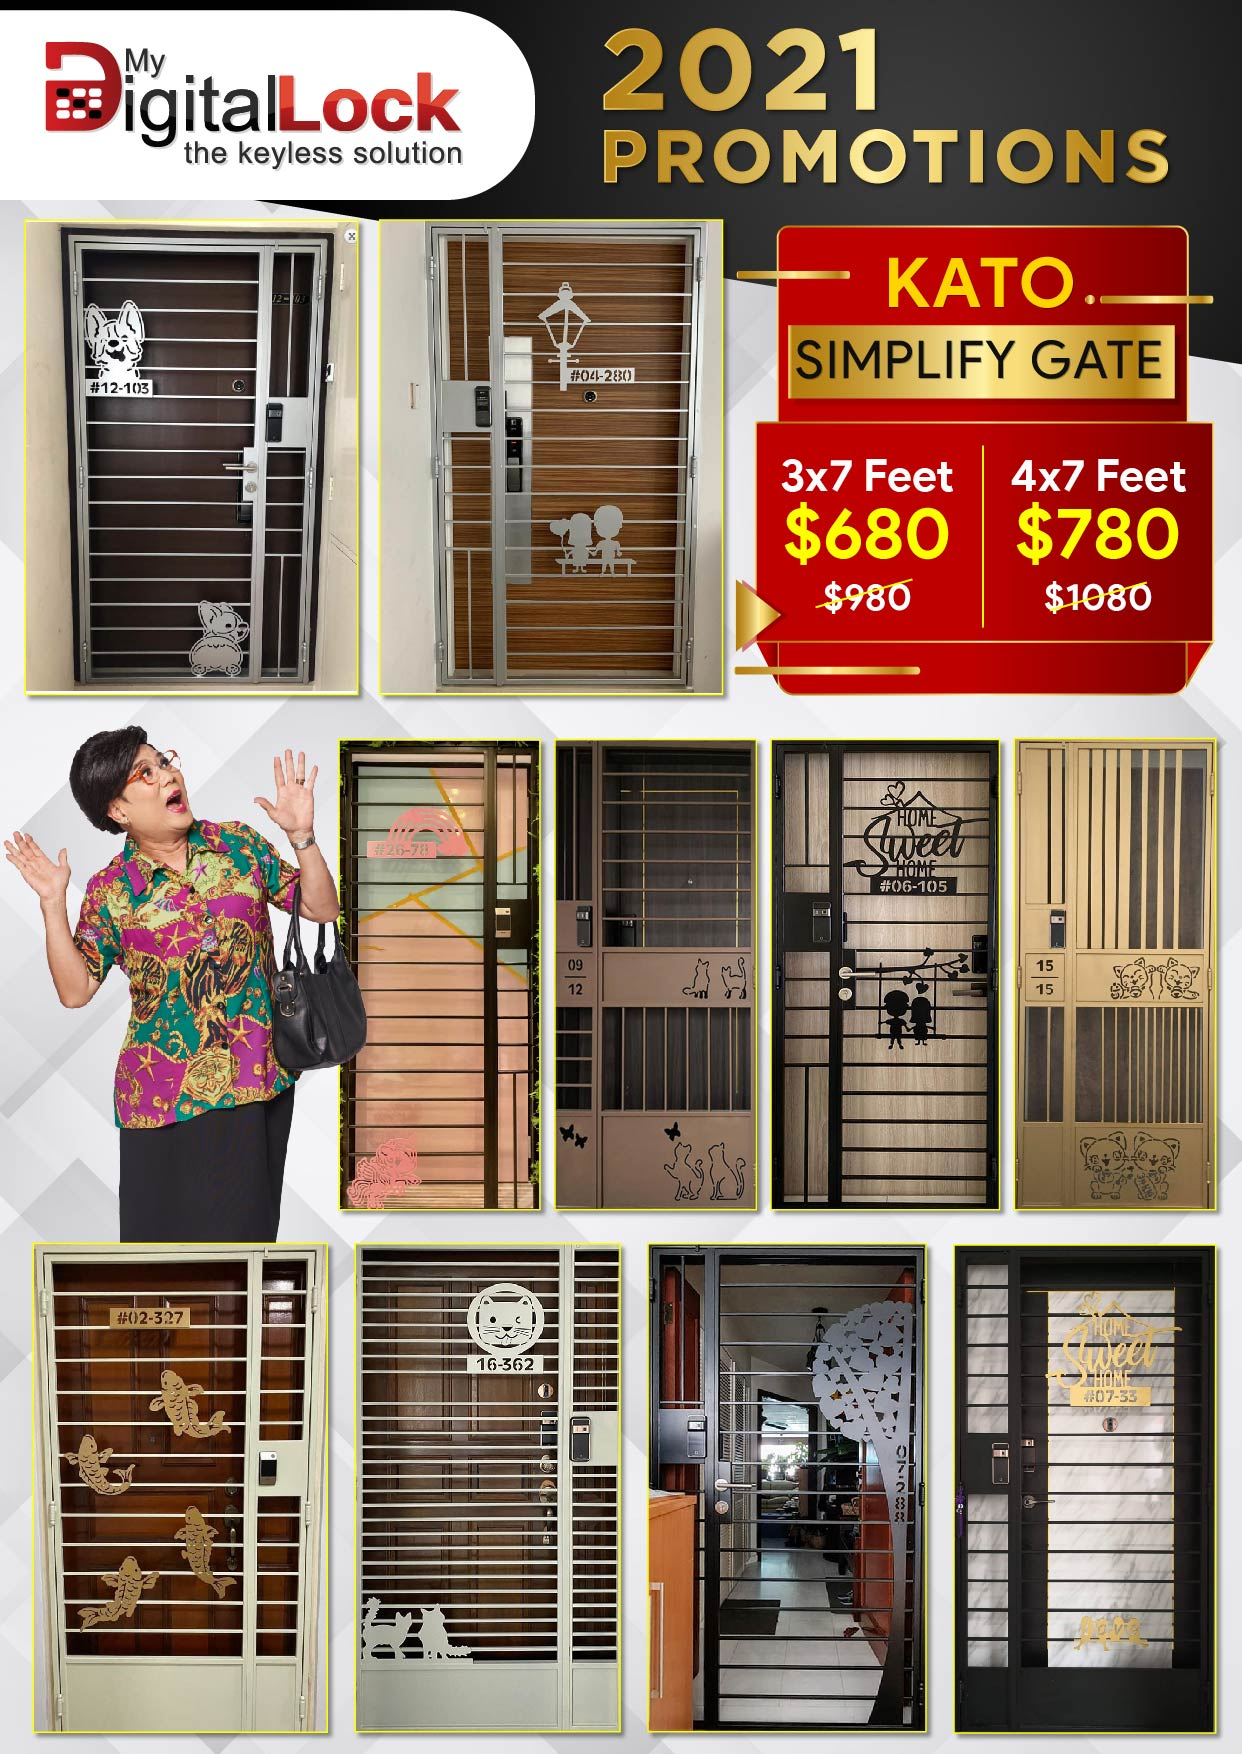 Kato Simplify Gate 2021 Promotion